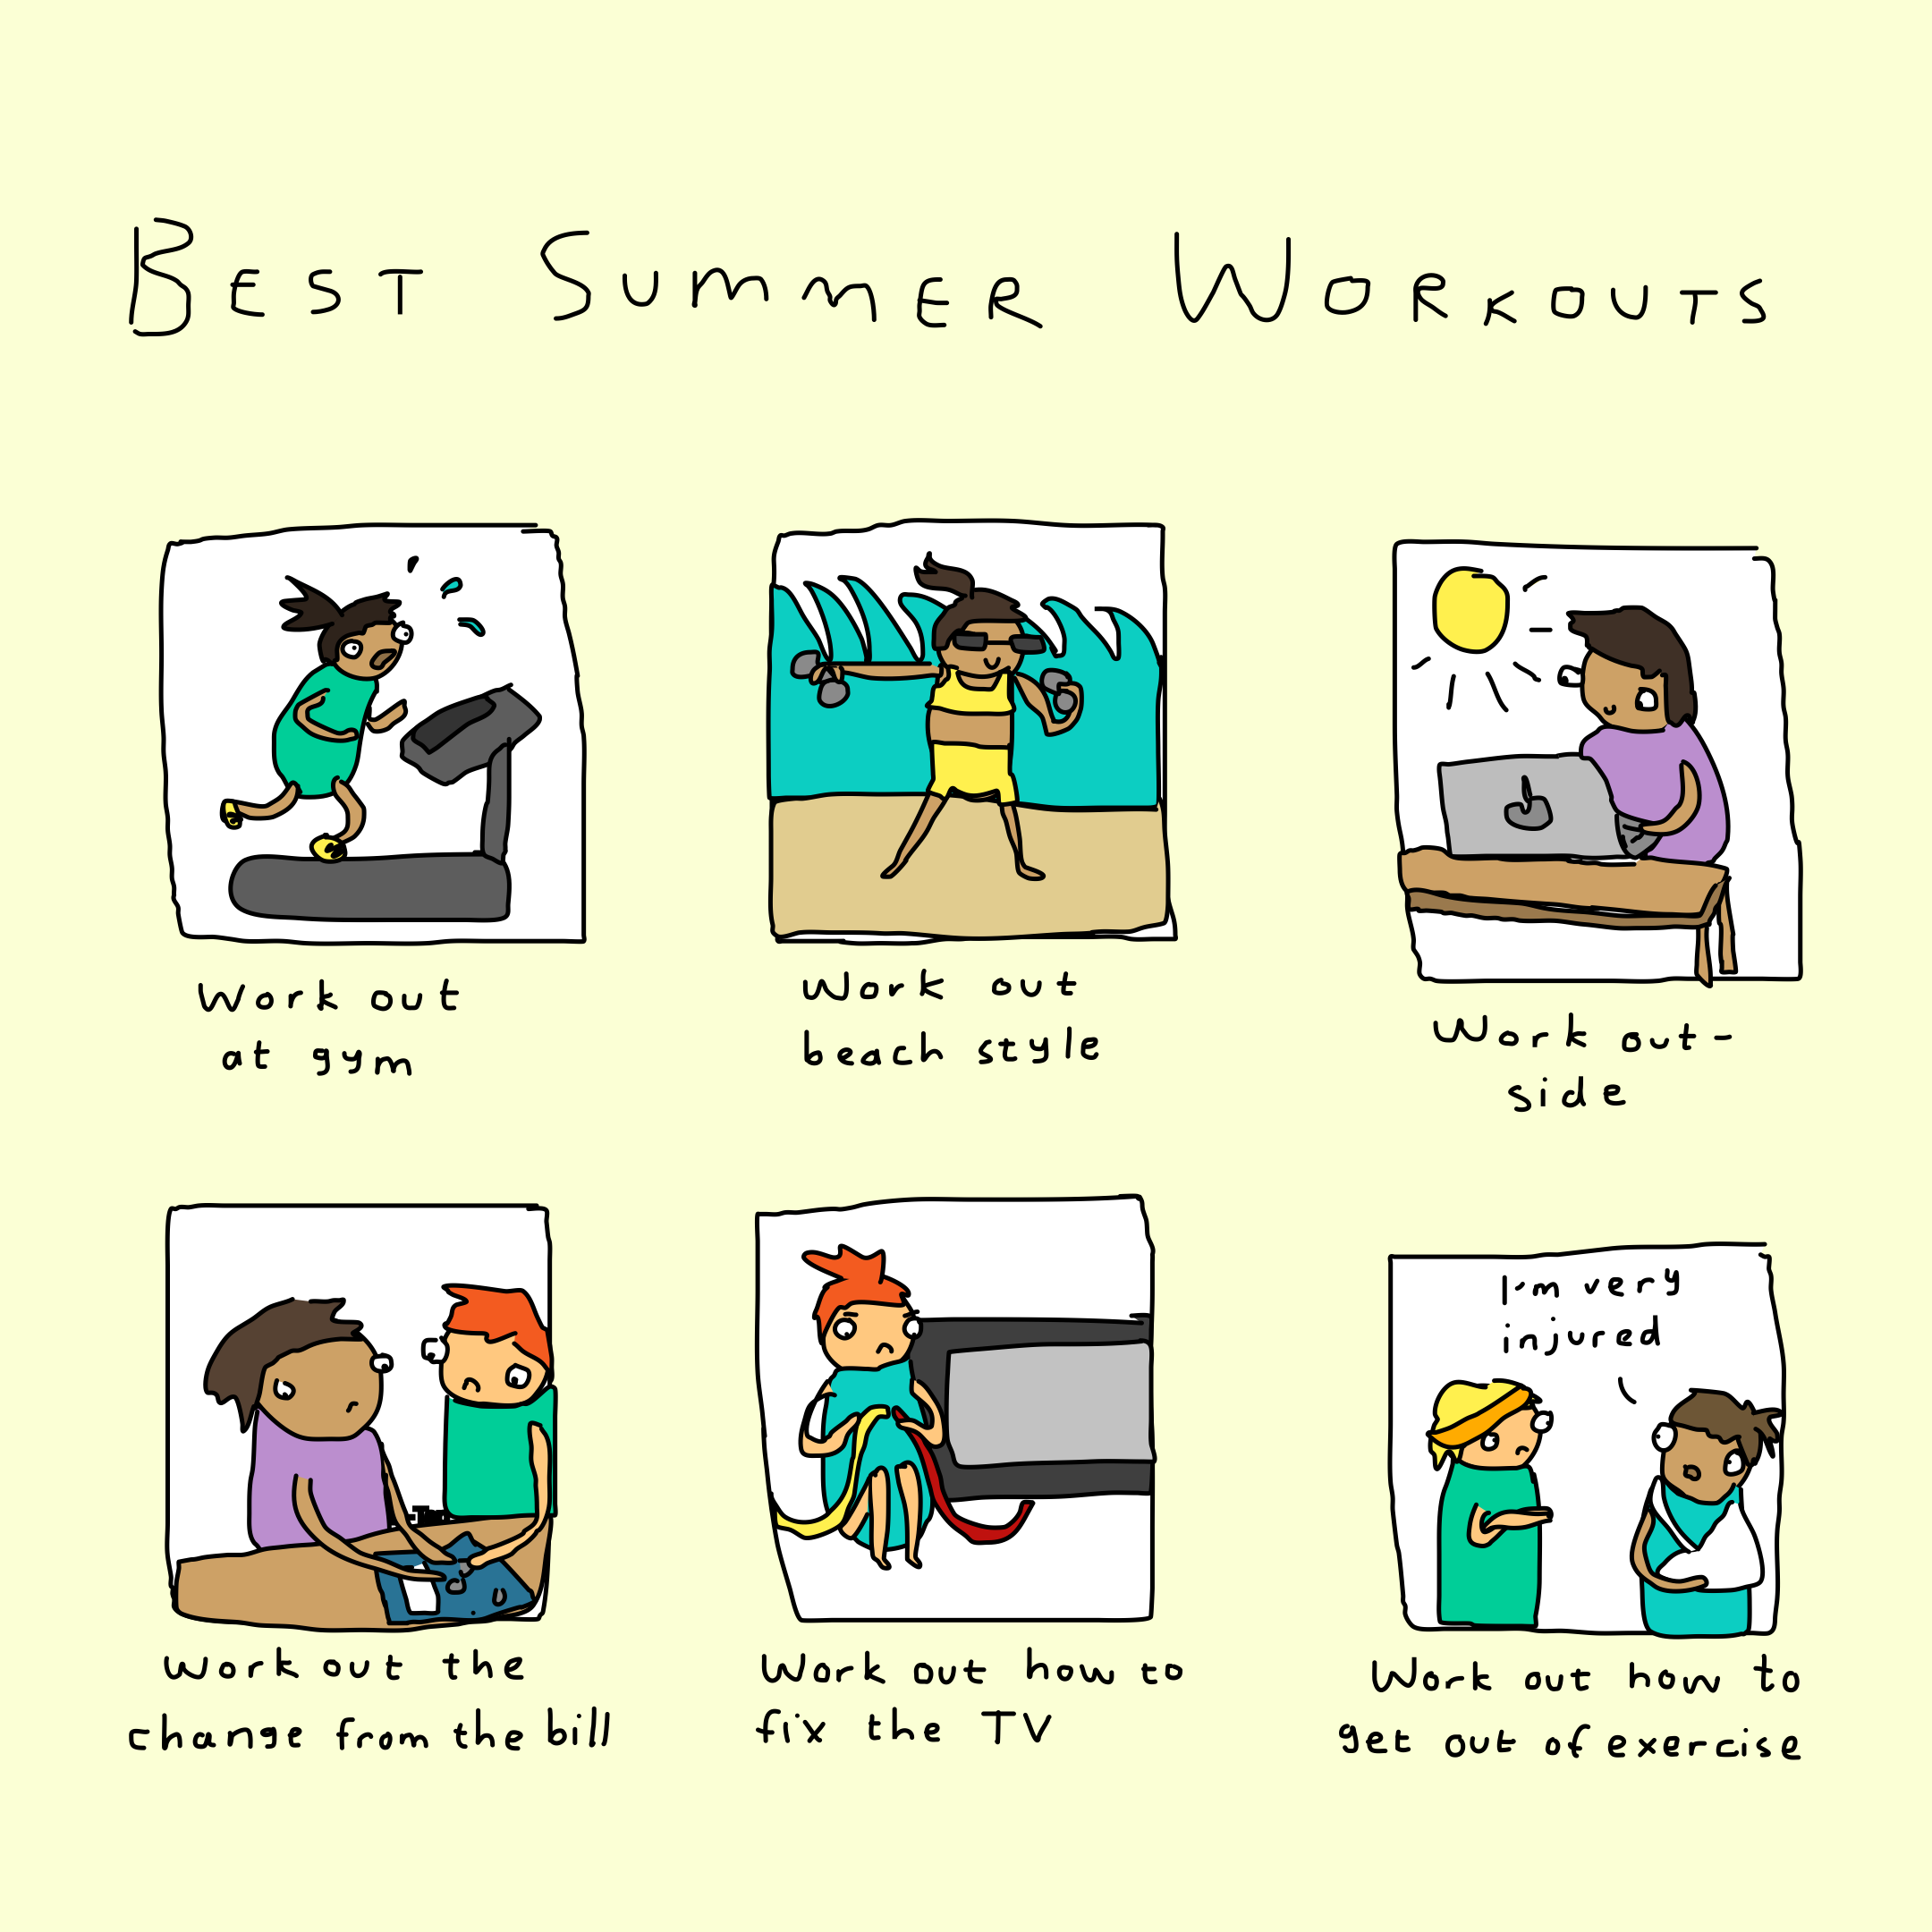 best summer workouts - 1.png